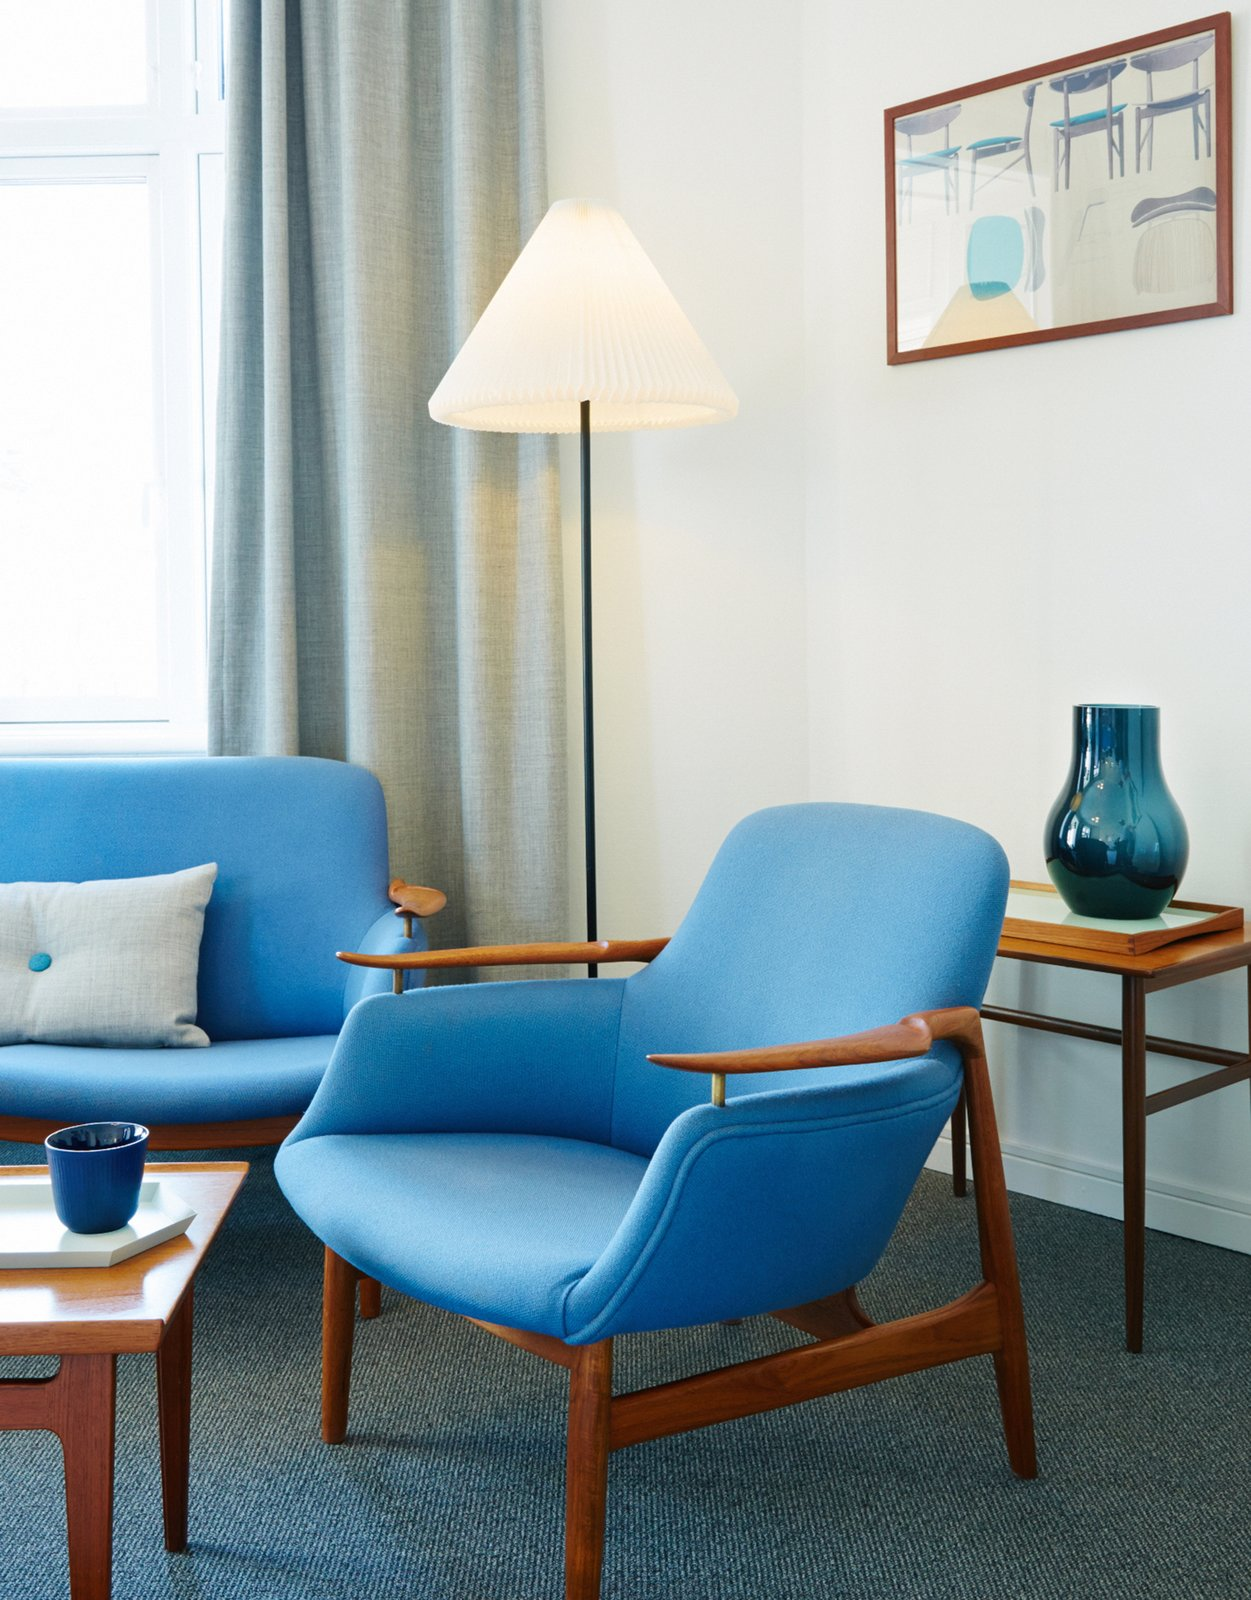 Living Room, Coffee Tables, Carpet Floor, Chair, Sofa, and Lamps Finn Juhl Deluxe Room  Photo 7 of 9 in Get Your Fix of Midcentury Scandinavian Design at This Copenhagen Hotel